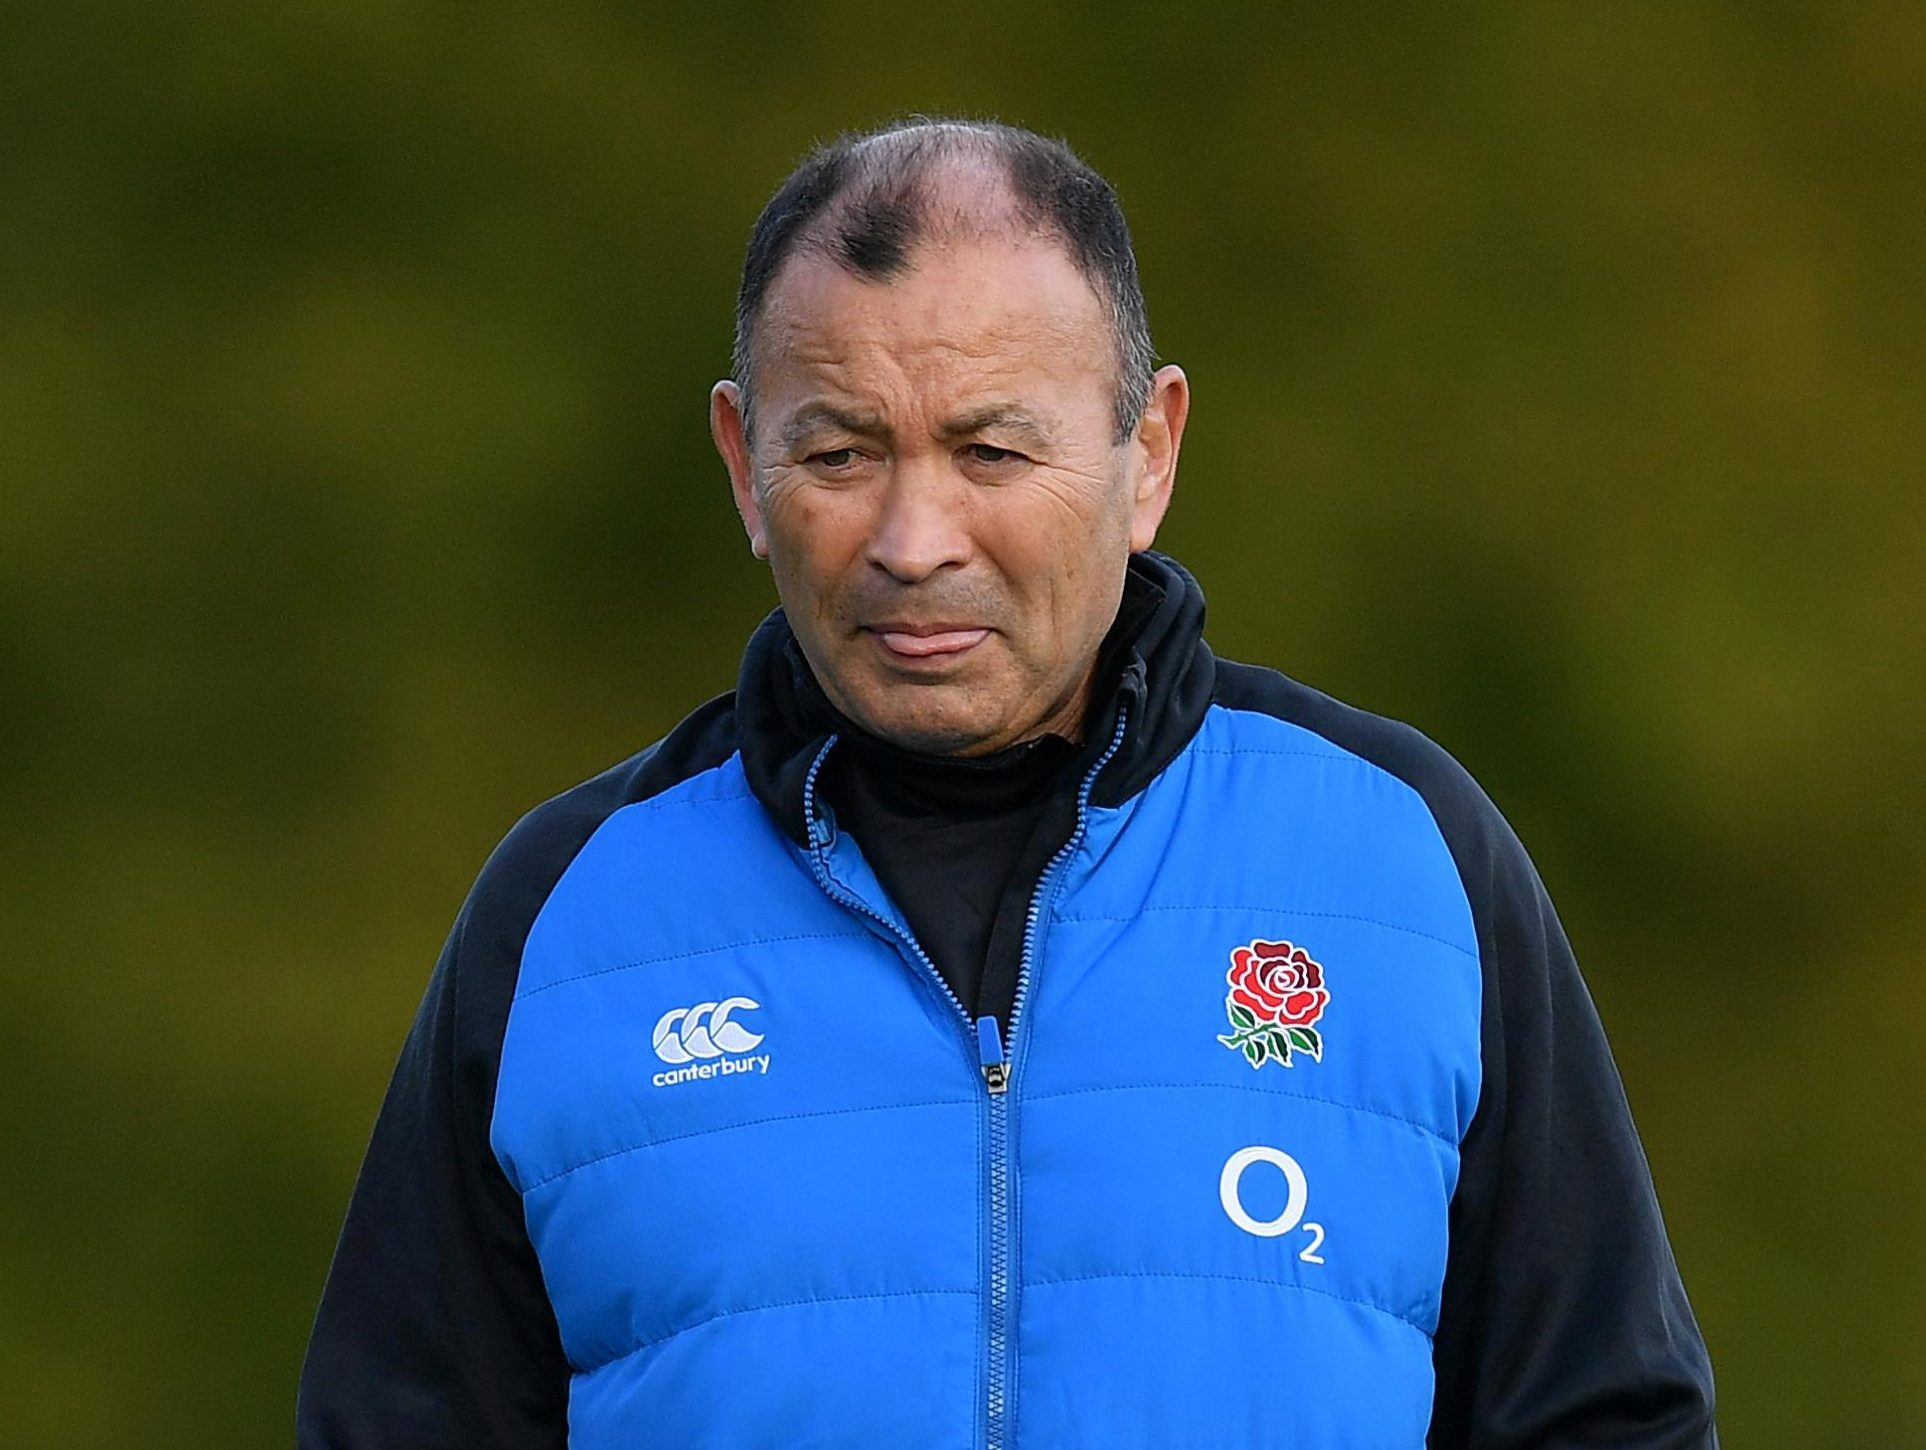 It leaves Eddie Jones with a potential selection headache ahead of the matches against